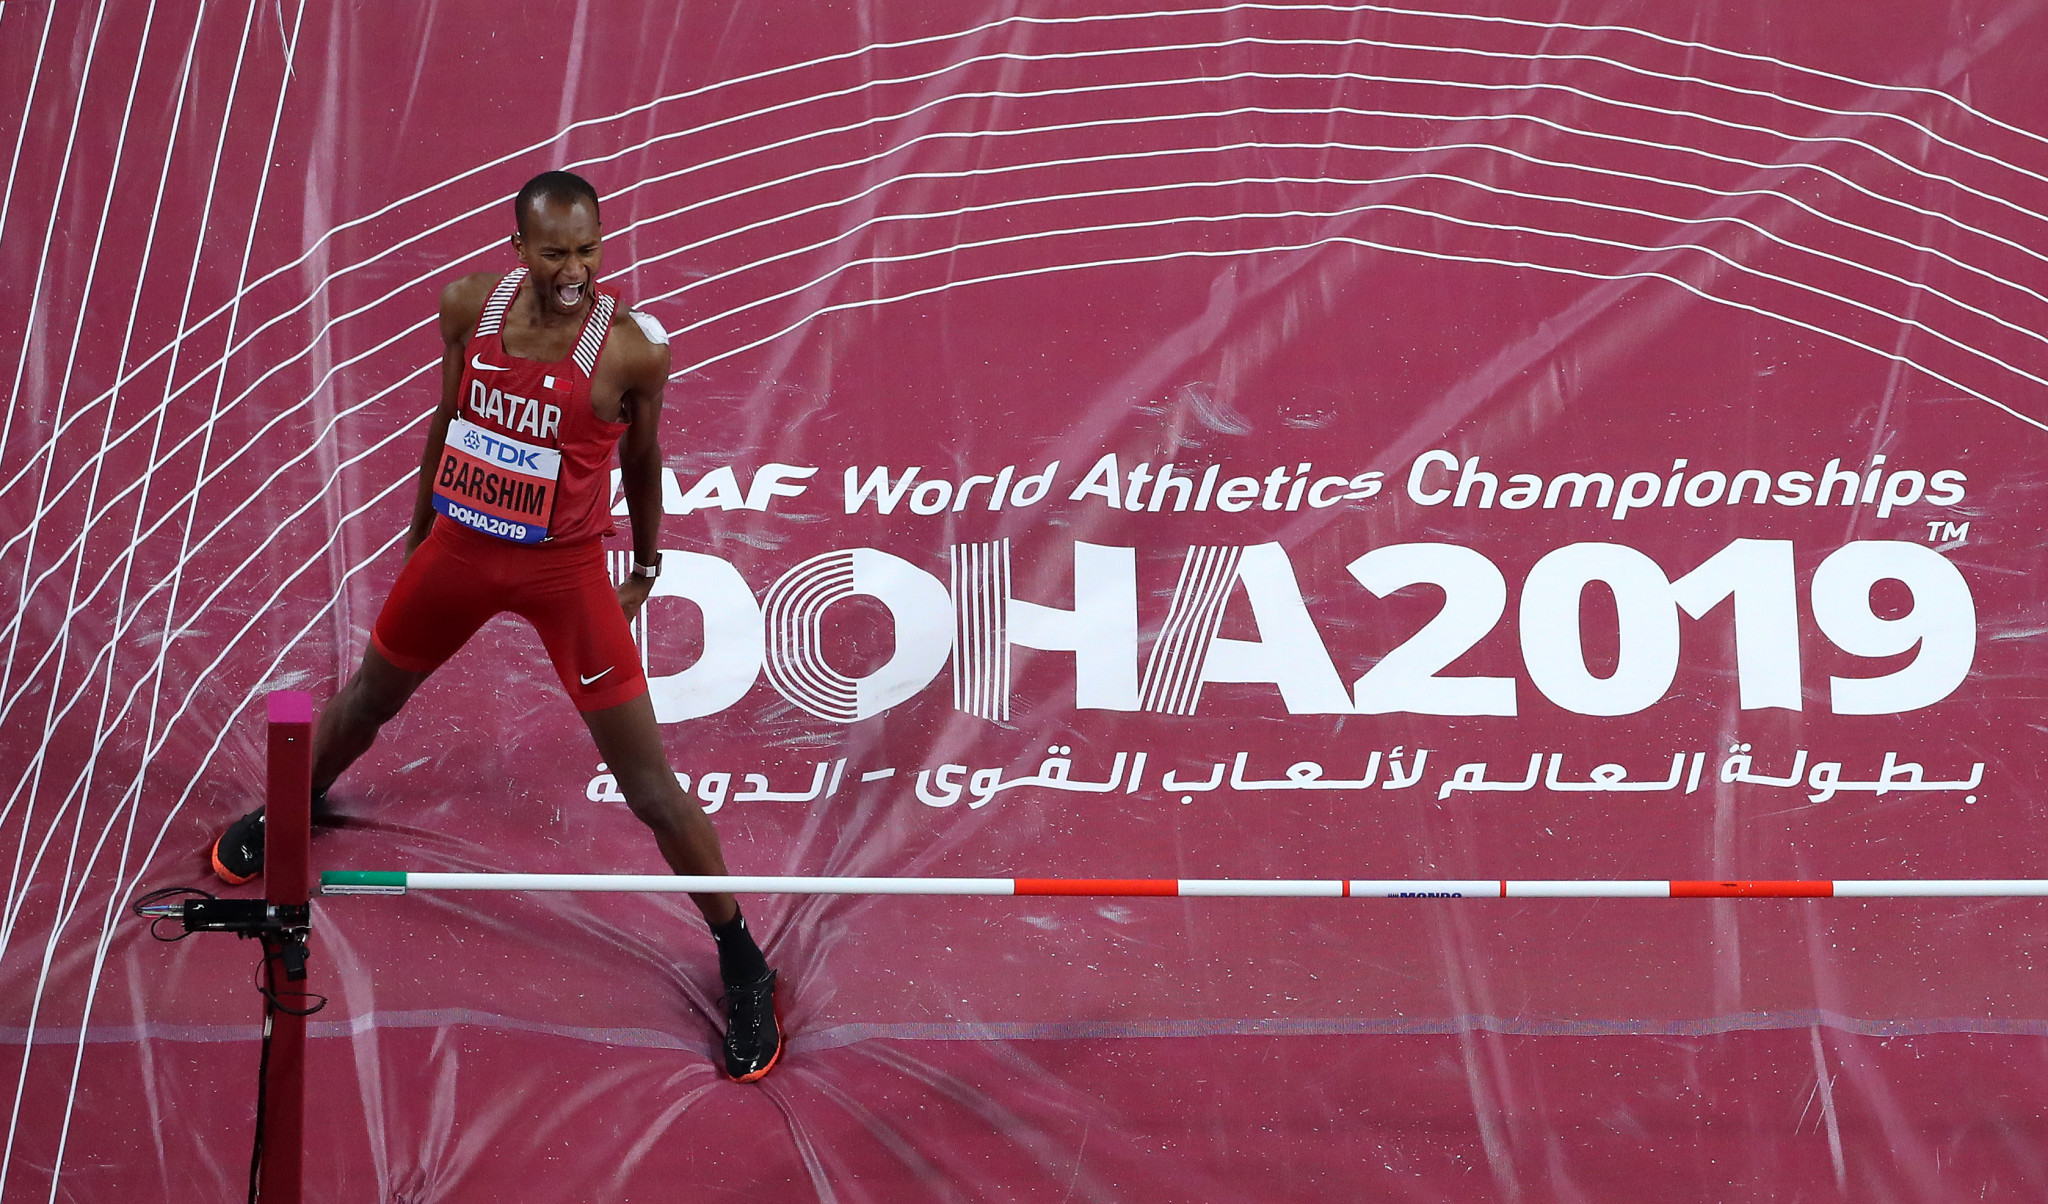 Local hero Barshim delivers on home gold as Muhammad betters her own 400m hurdles world record